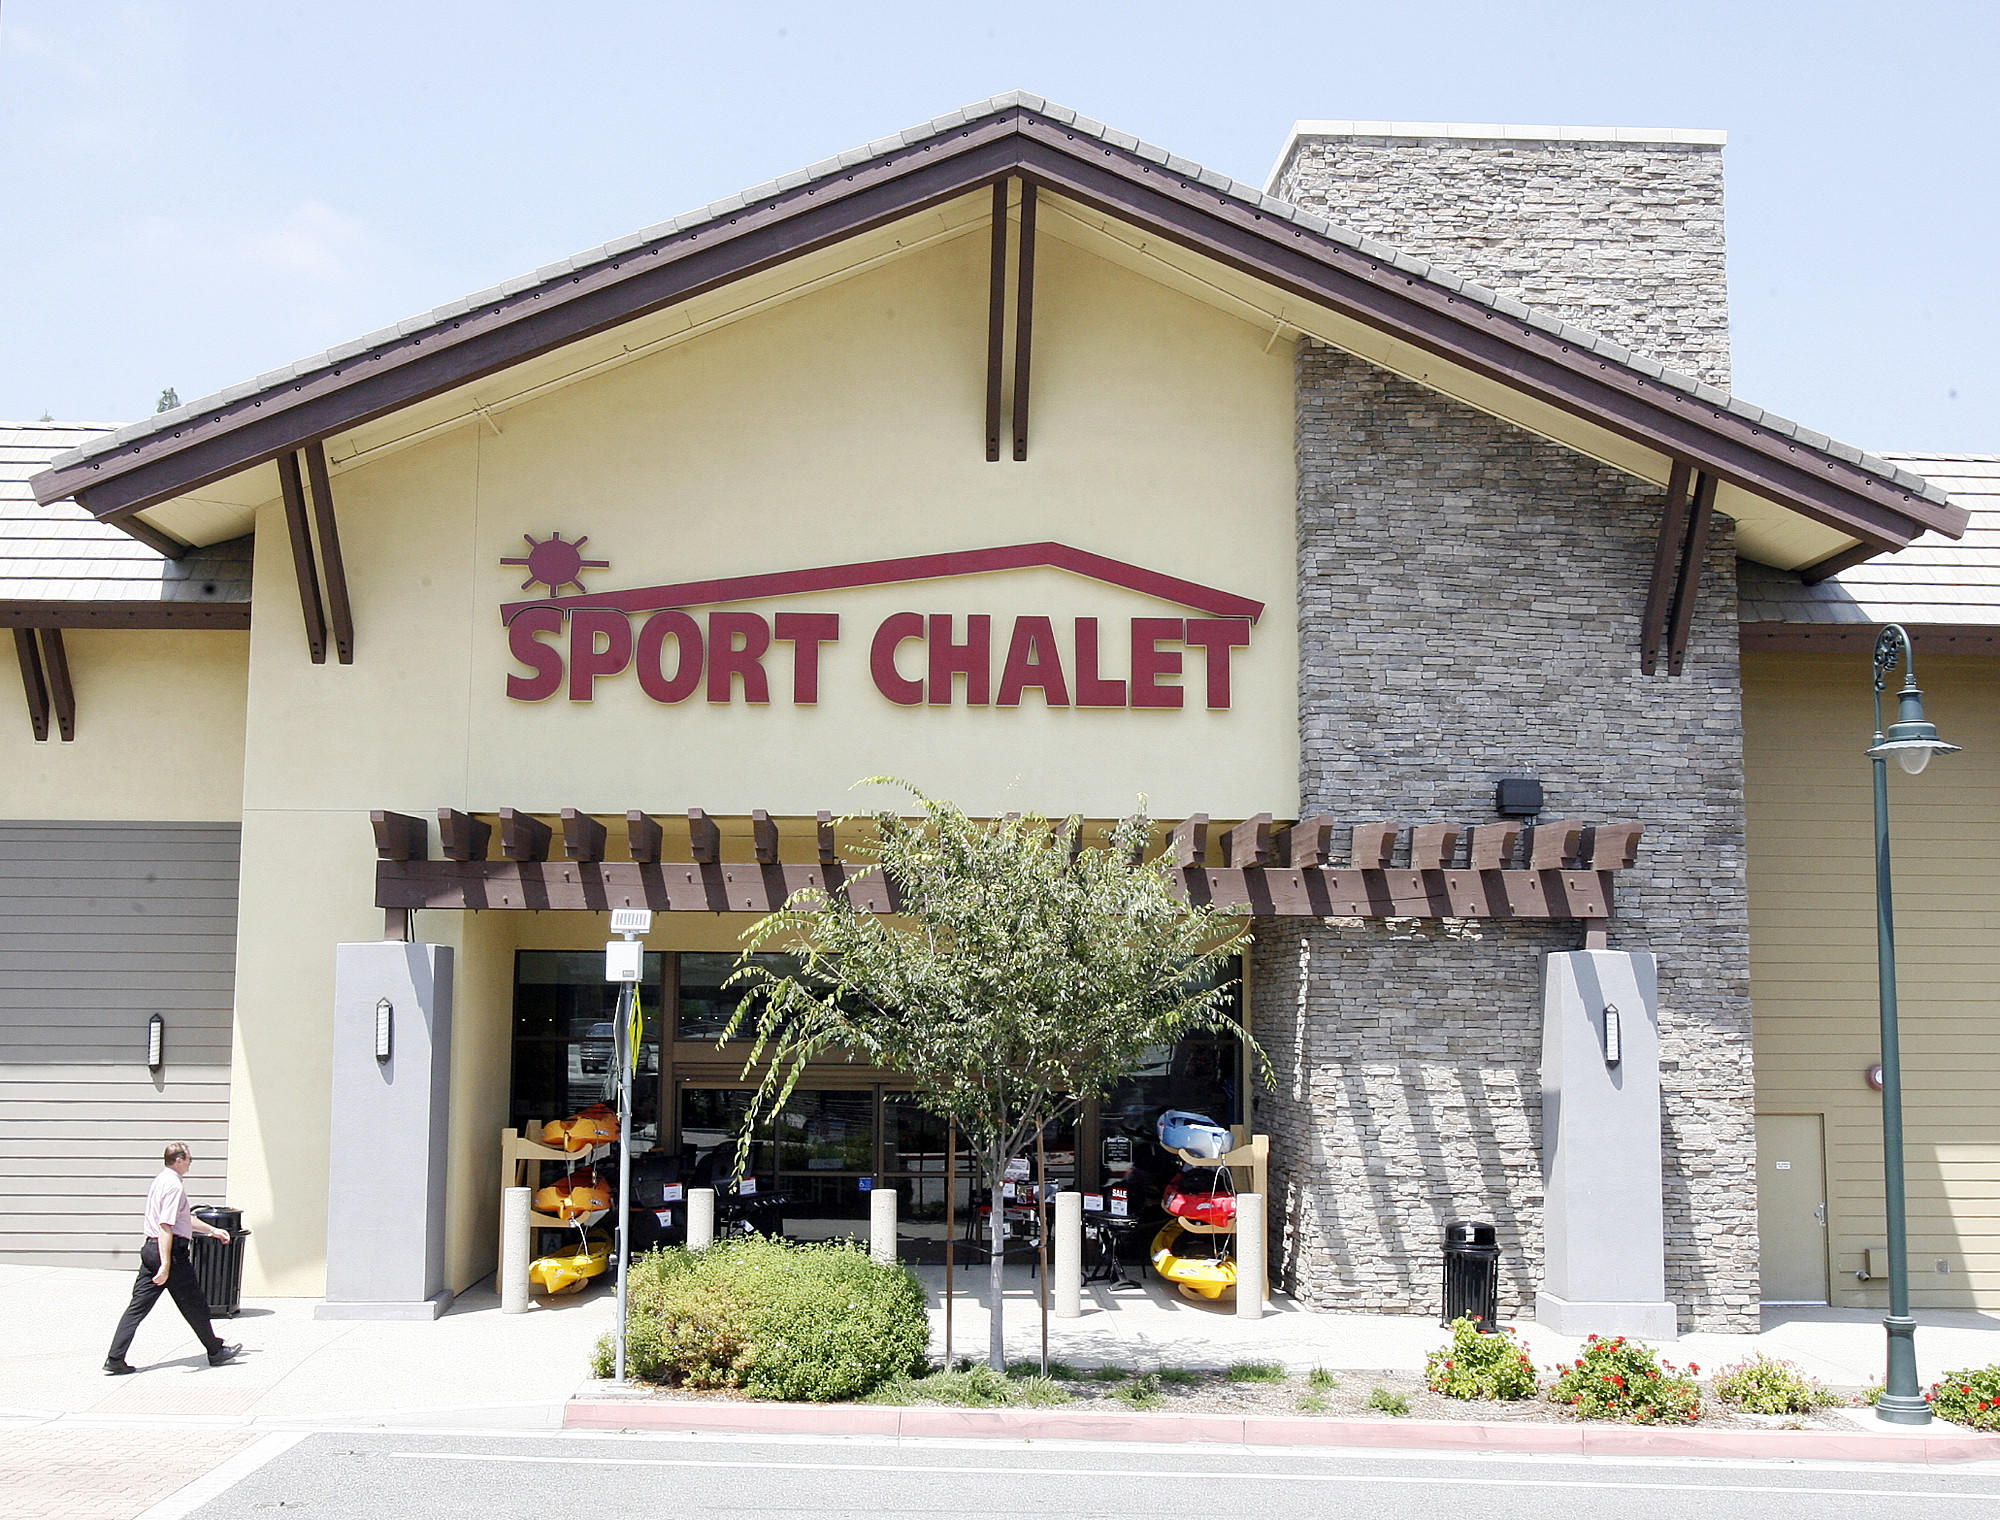 Sport Chalet in La Cañada Flintridge on Monday, June 4, 2012.